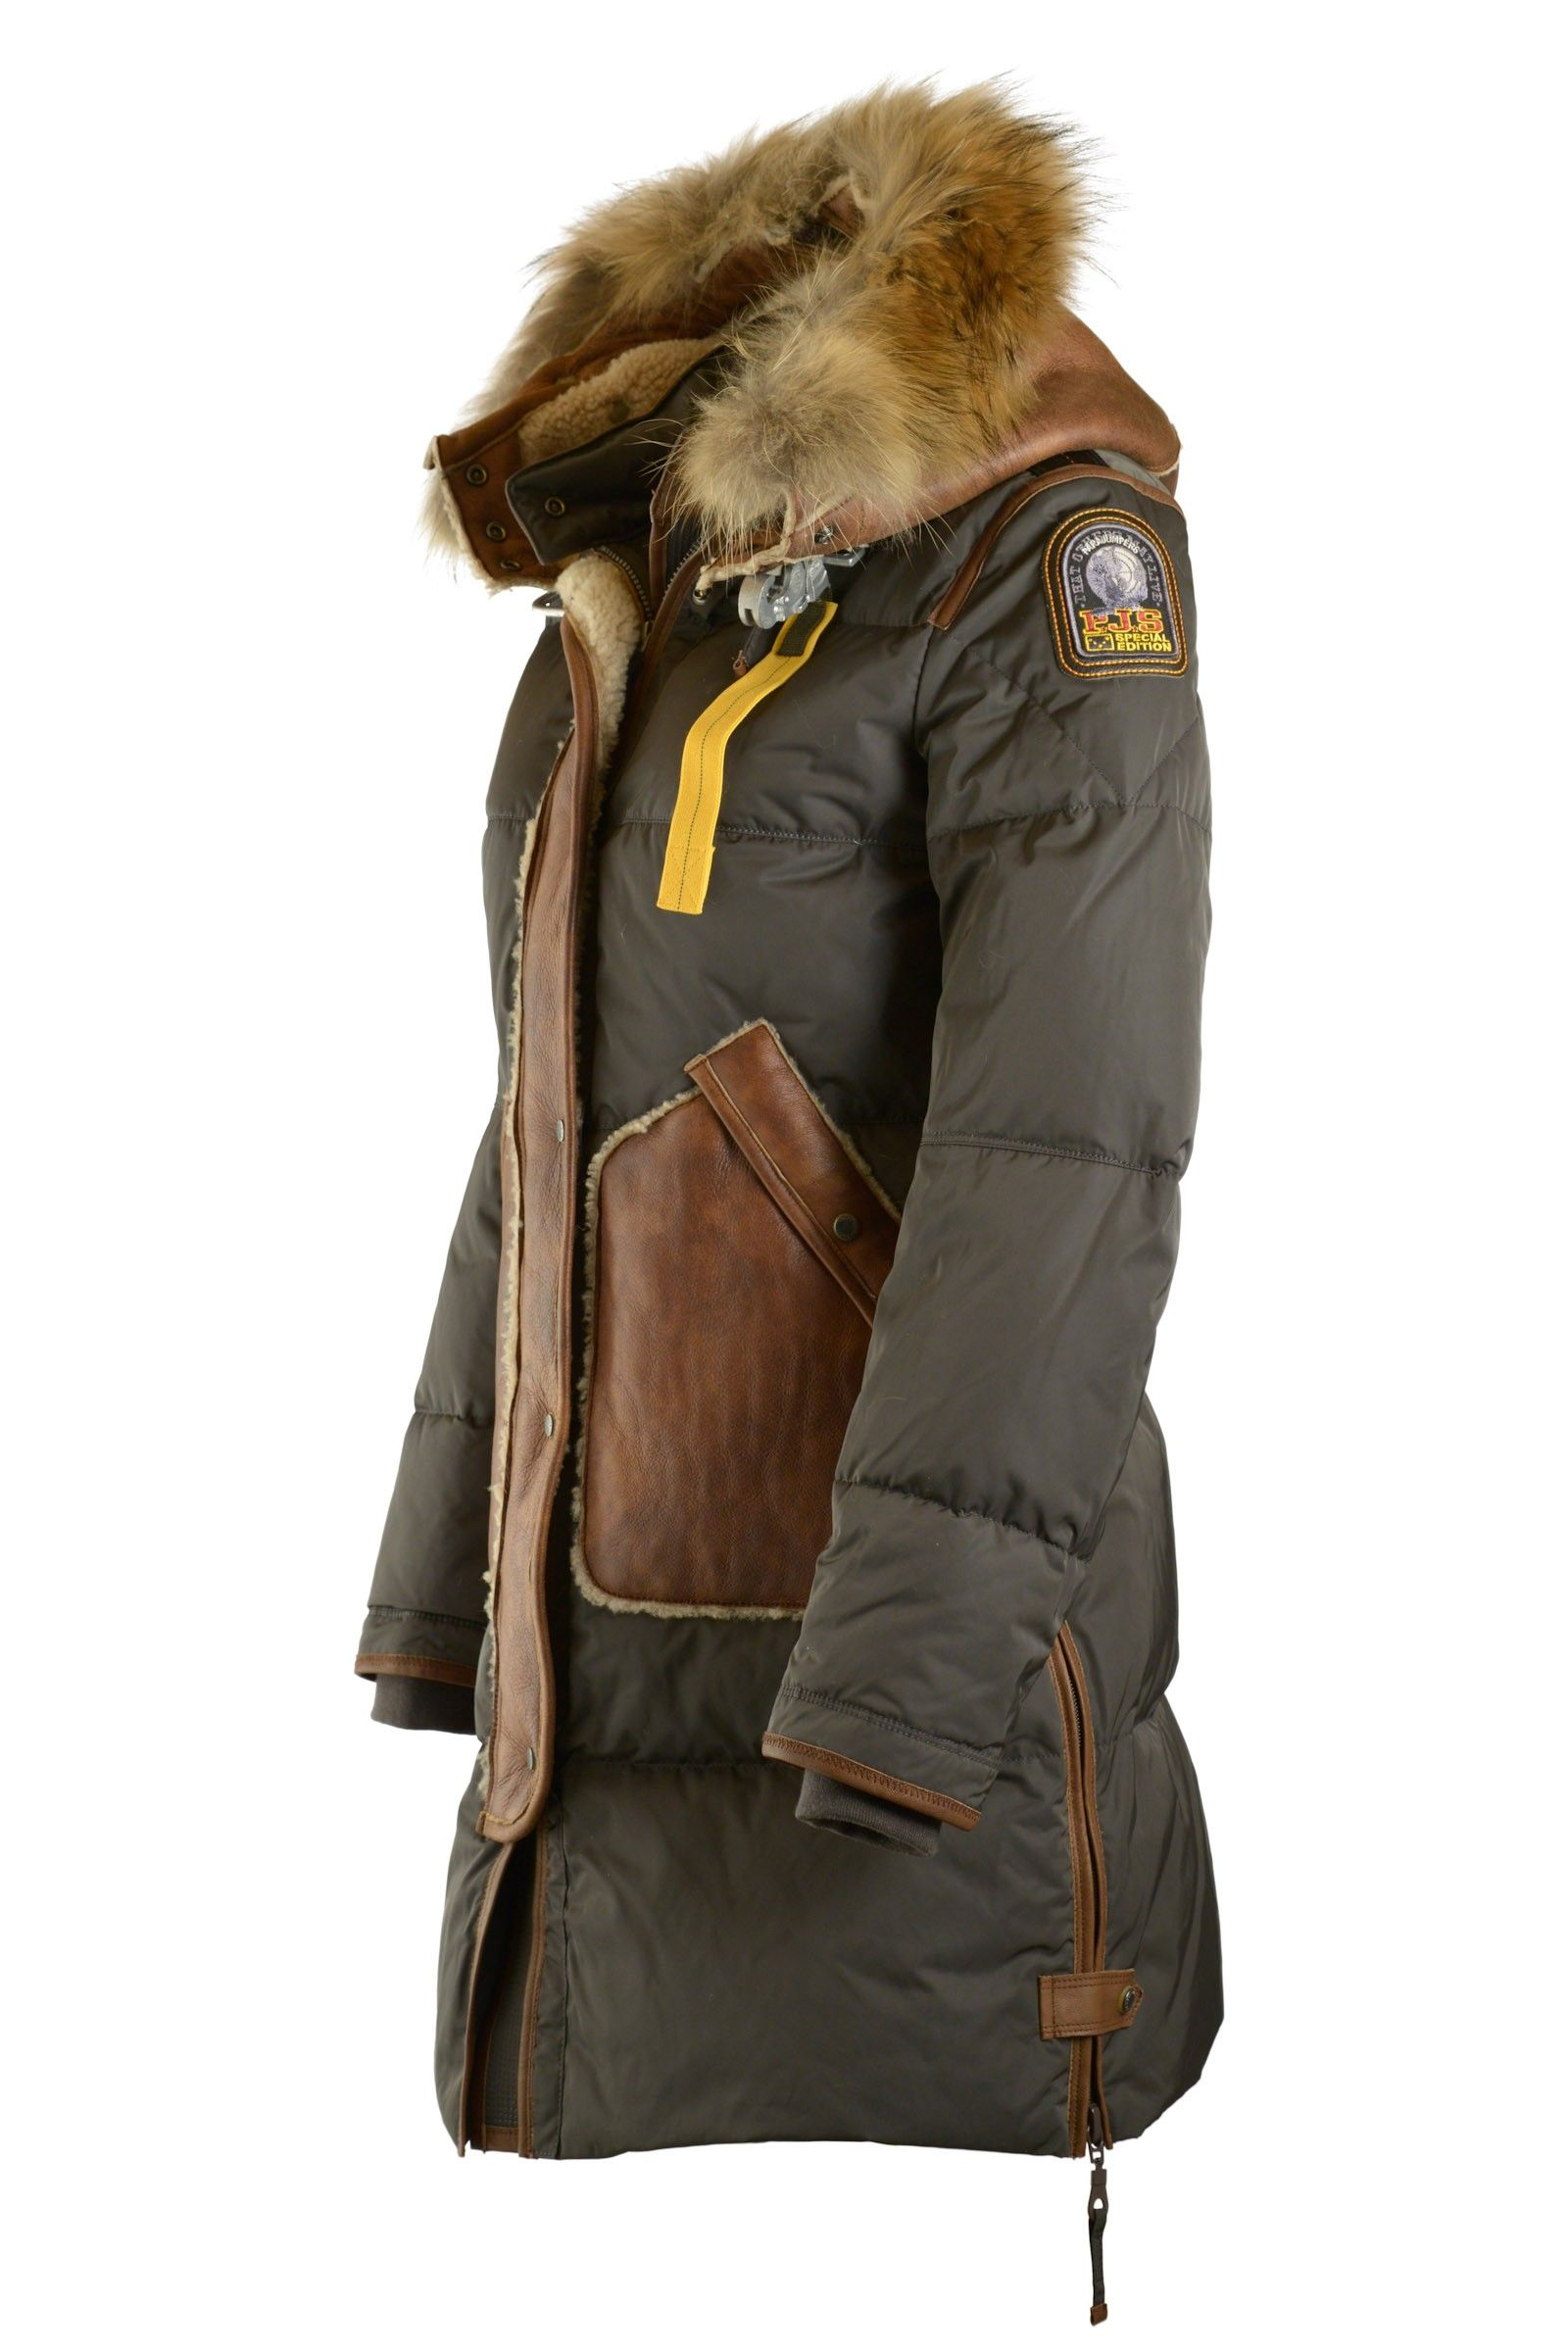 ea69b724257d LONG BEAR SPECIAL - WOMAN - special edition - Outerwear - WOMAN |  Parajumpers